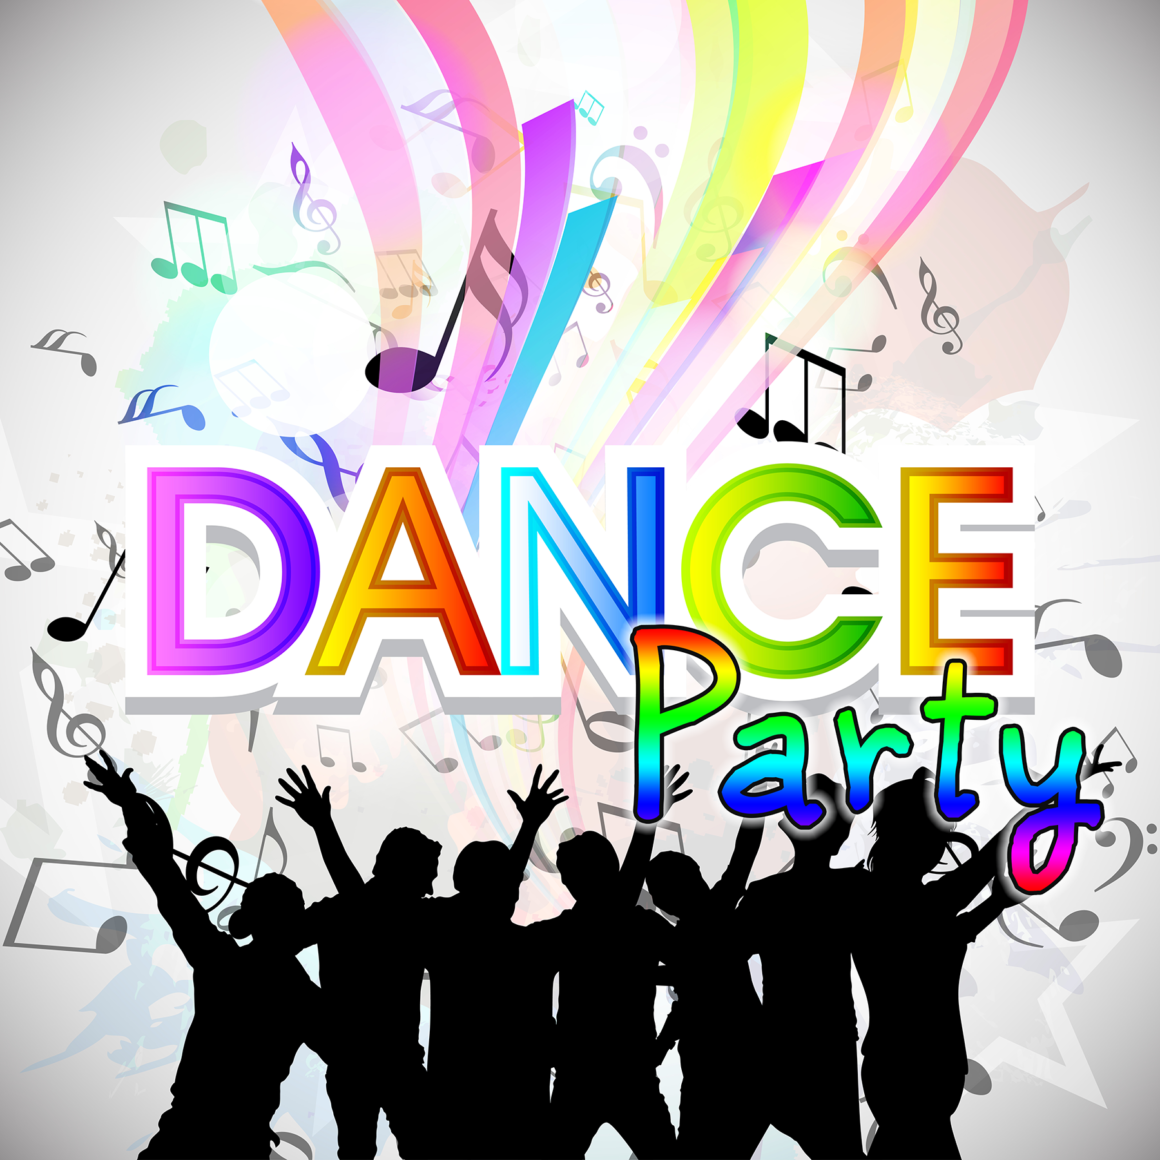 Dance Party Dance Images Dance Party Party Zone